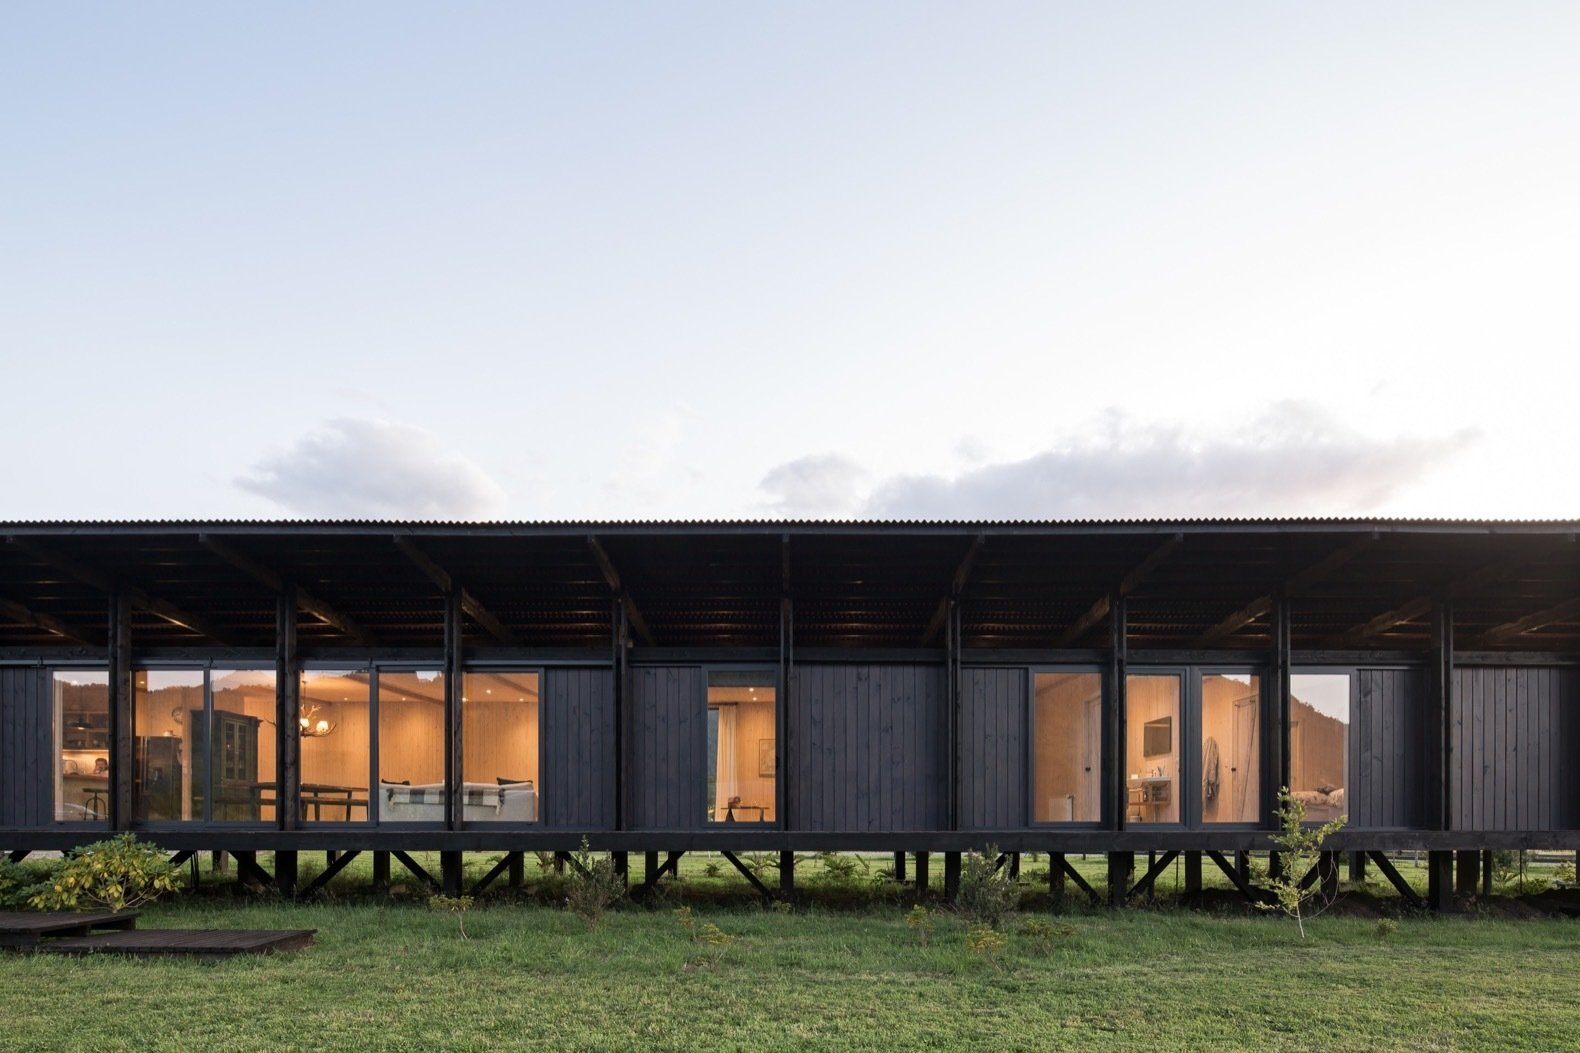 Budget Breakdown: This Modular Cabin in Chile Cost Just $51 Per Square Foot